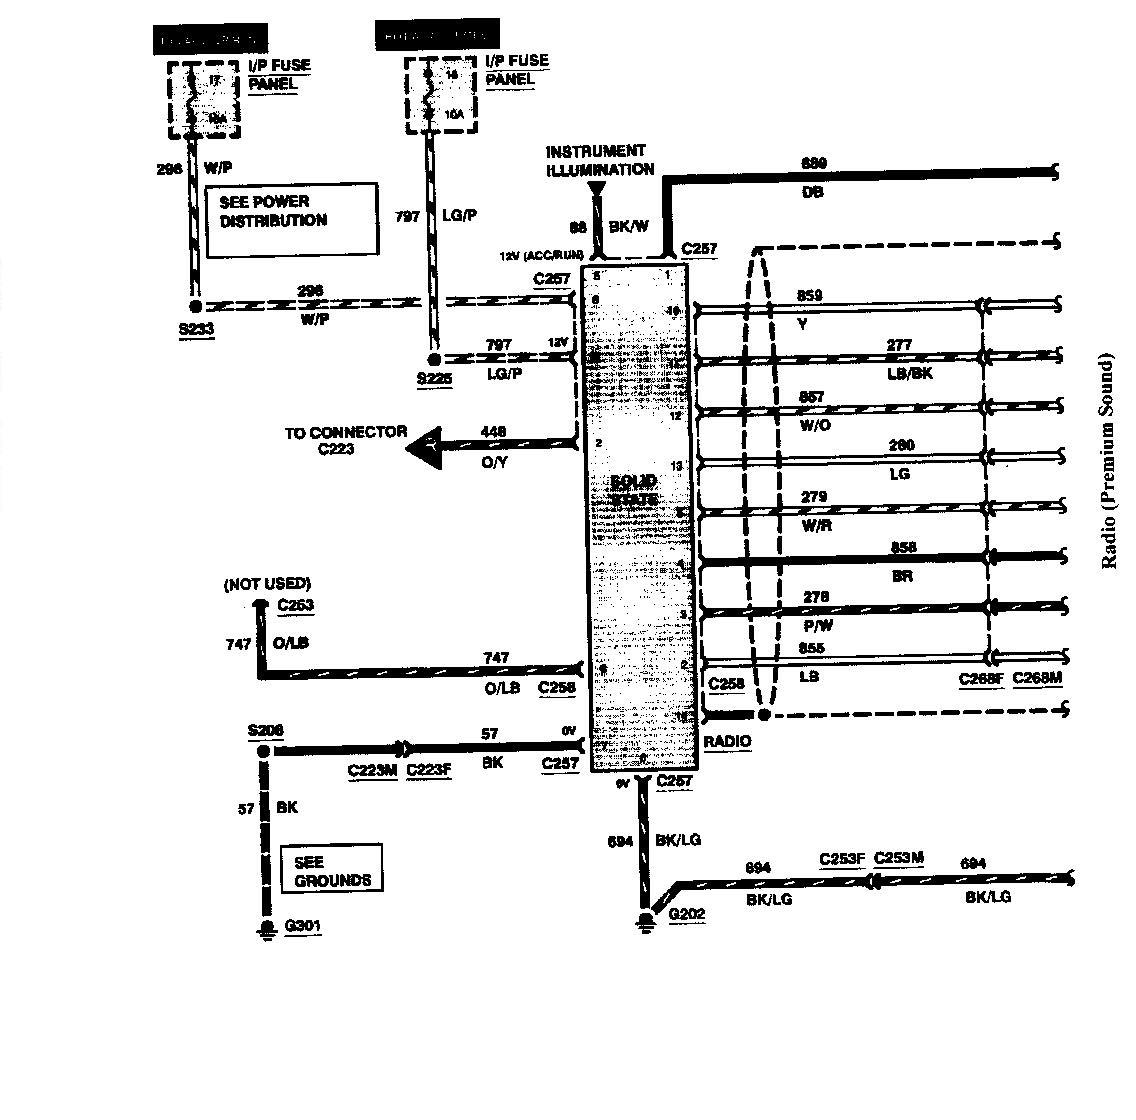 95Mark8 Premium Sound Wiring lincoln ls stereo wiring diagram ls engine relay box diagram 1997 ford explorer radio wiring diagram jbl at gsmx.co